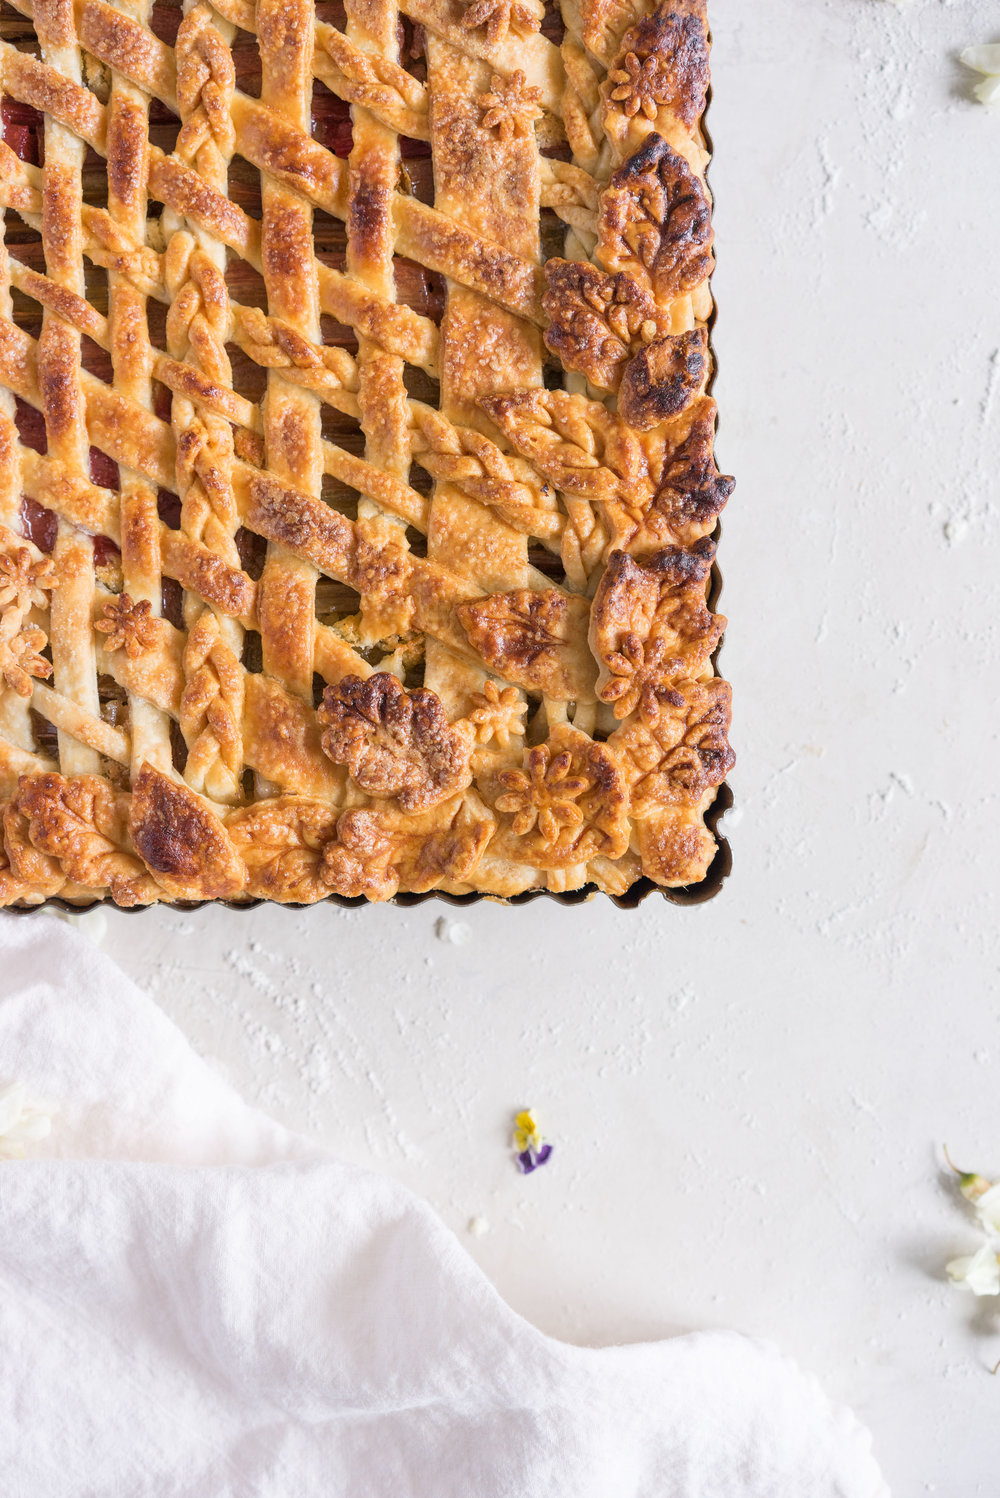 Rhubarb Frangipane Slab Pie - Flaky tender pie crust, sweet nutty frangipane, and vanilla infused roasted rhubarb. Perfect Spring or Early Summer Pie